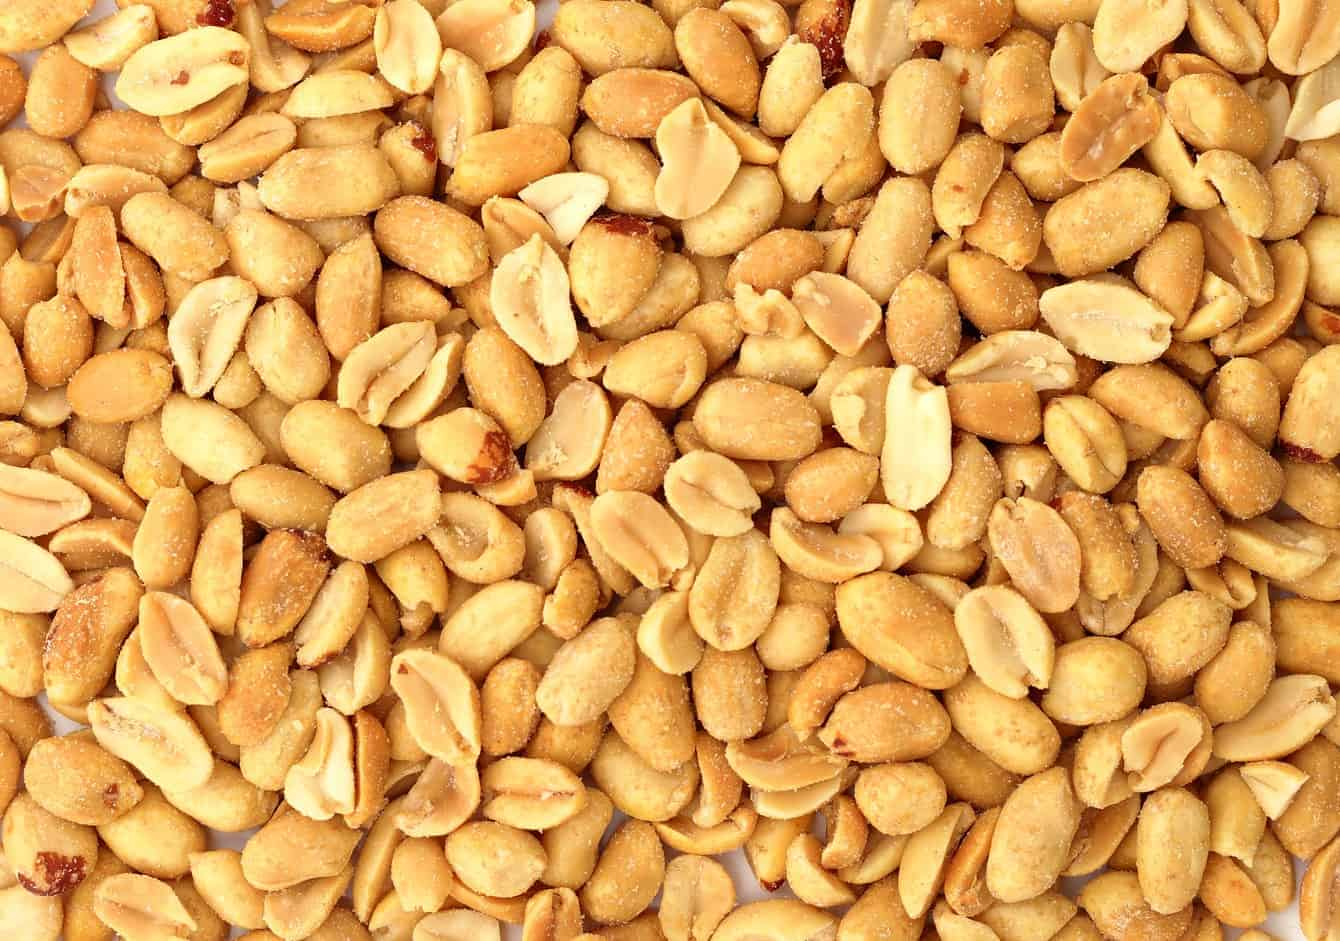 Medical Fiction: Peter and The Nuts of Death